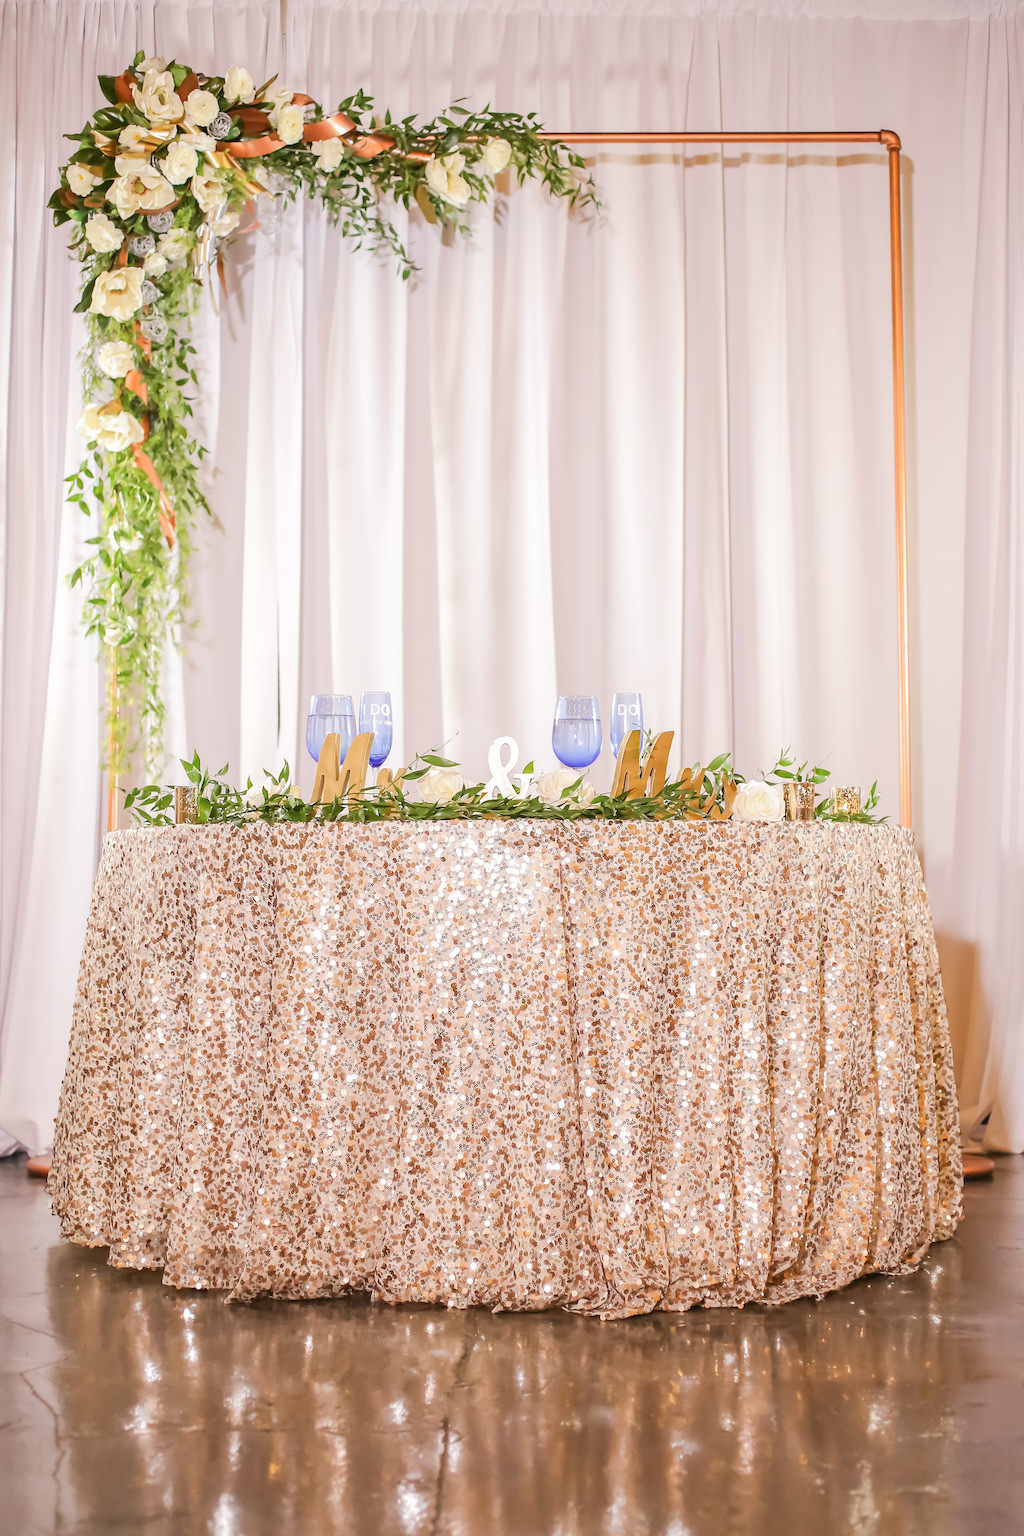 Industrial Inspired Wedding Reception Decor, Gold Metal Arch with White and Greenery Florals, Sweetheart Table with Sparkle Blush Pink Tablecloth, Gold Mr and Mrs Sign and Greenery Garland   Tampa Bay Wedding Photographer Lifelong Photography Studios